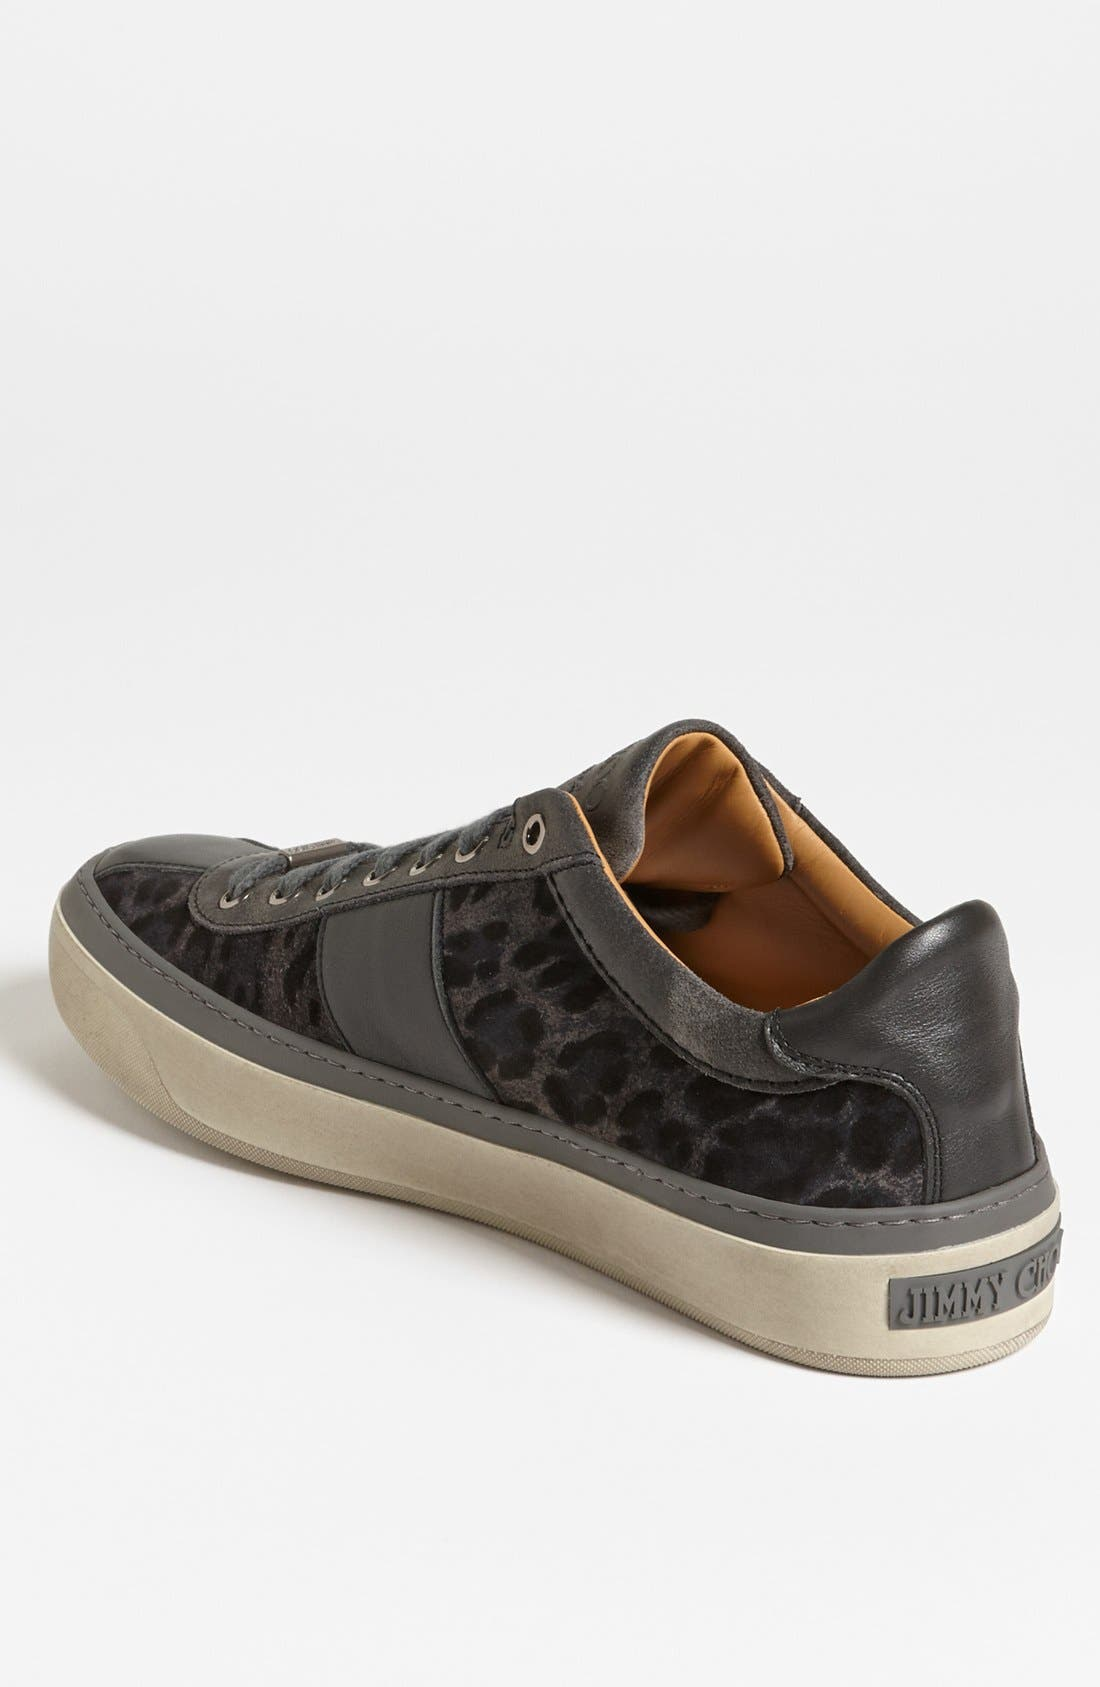 Alternate Image 2  - Jimmy Choo 'Portman' Sneaker